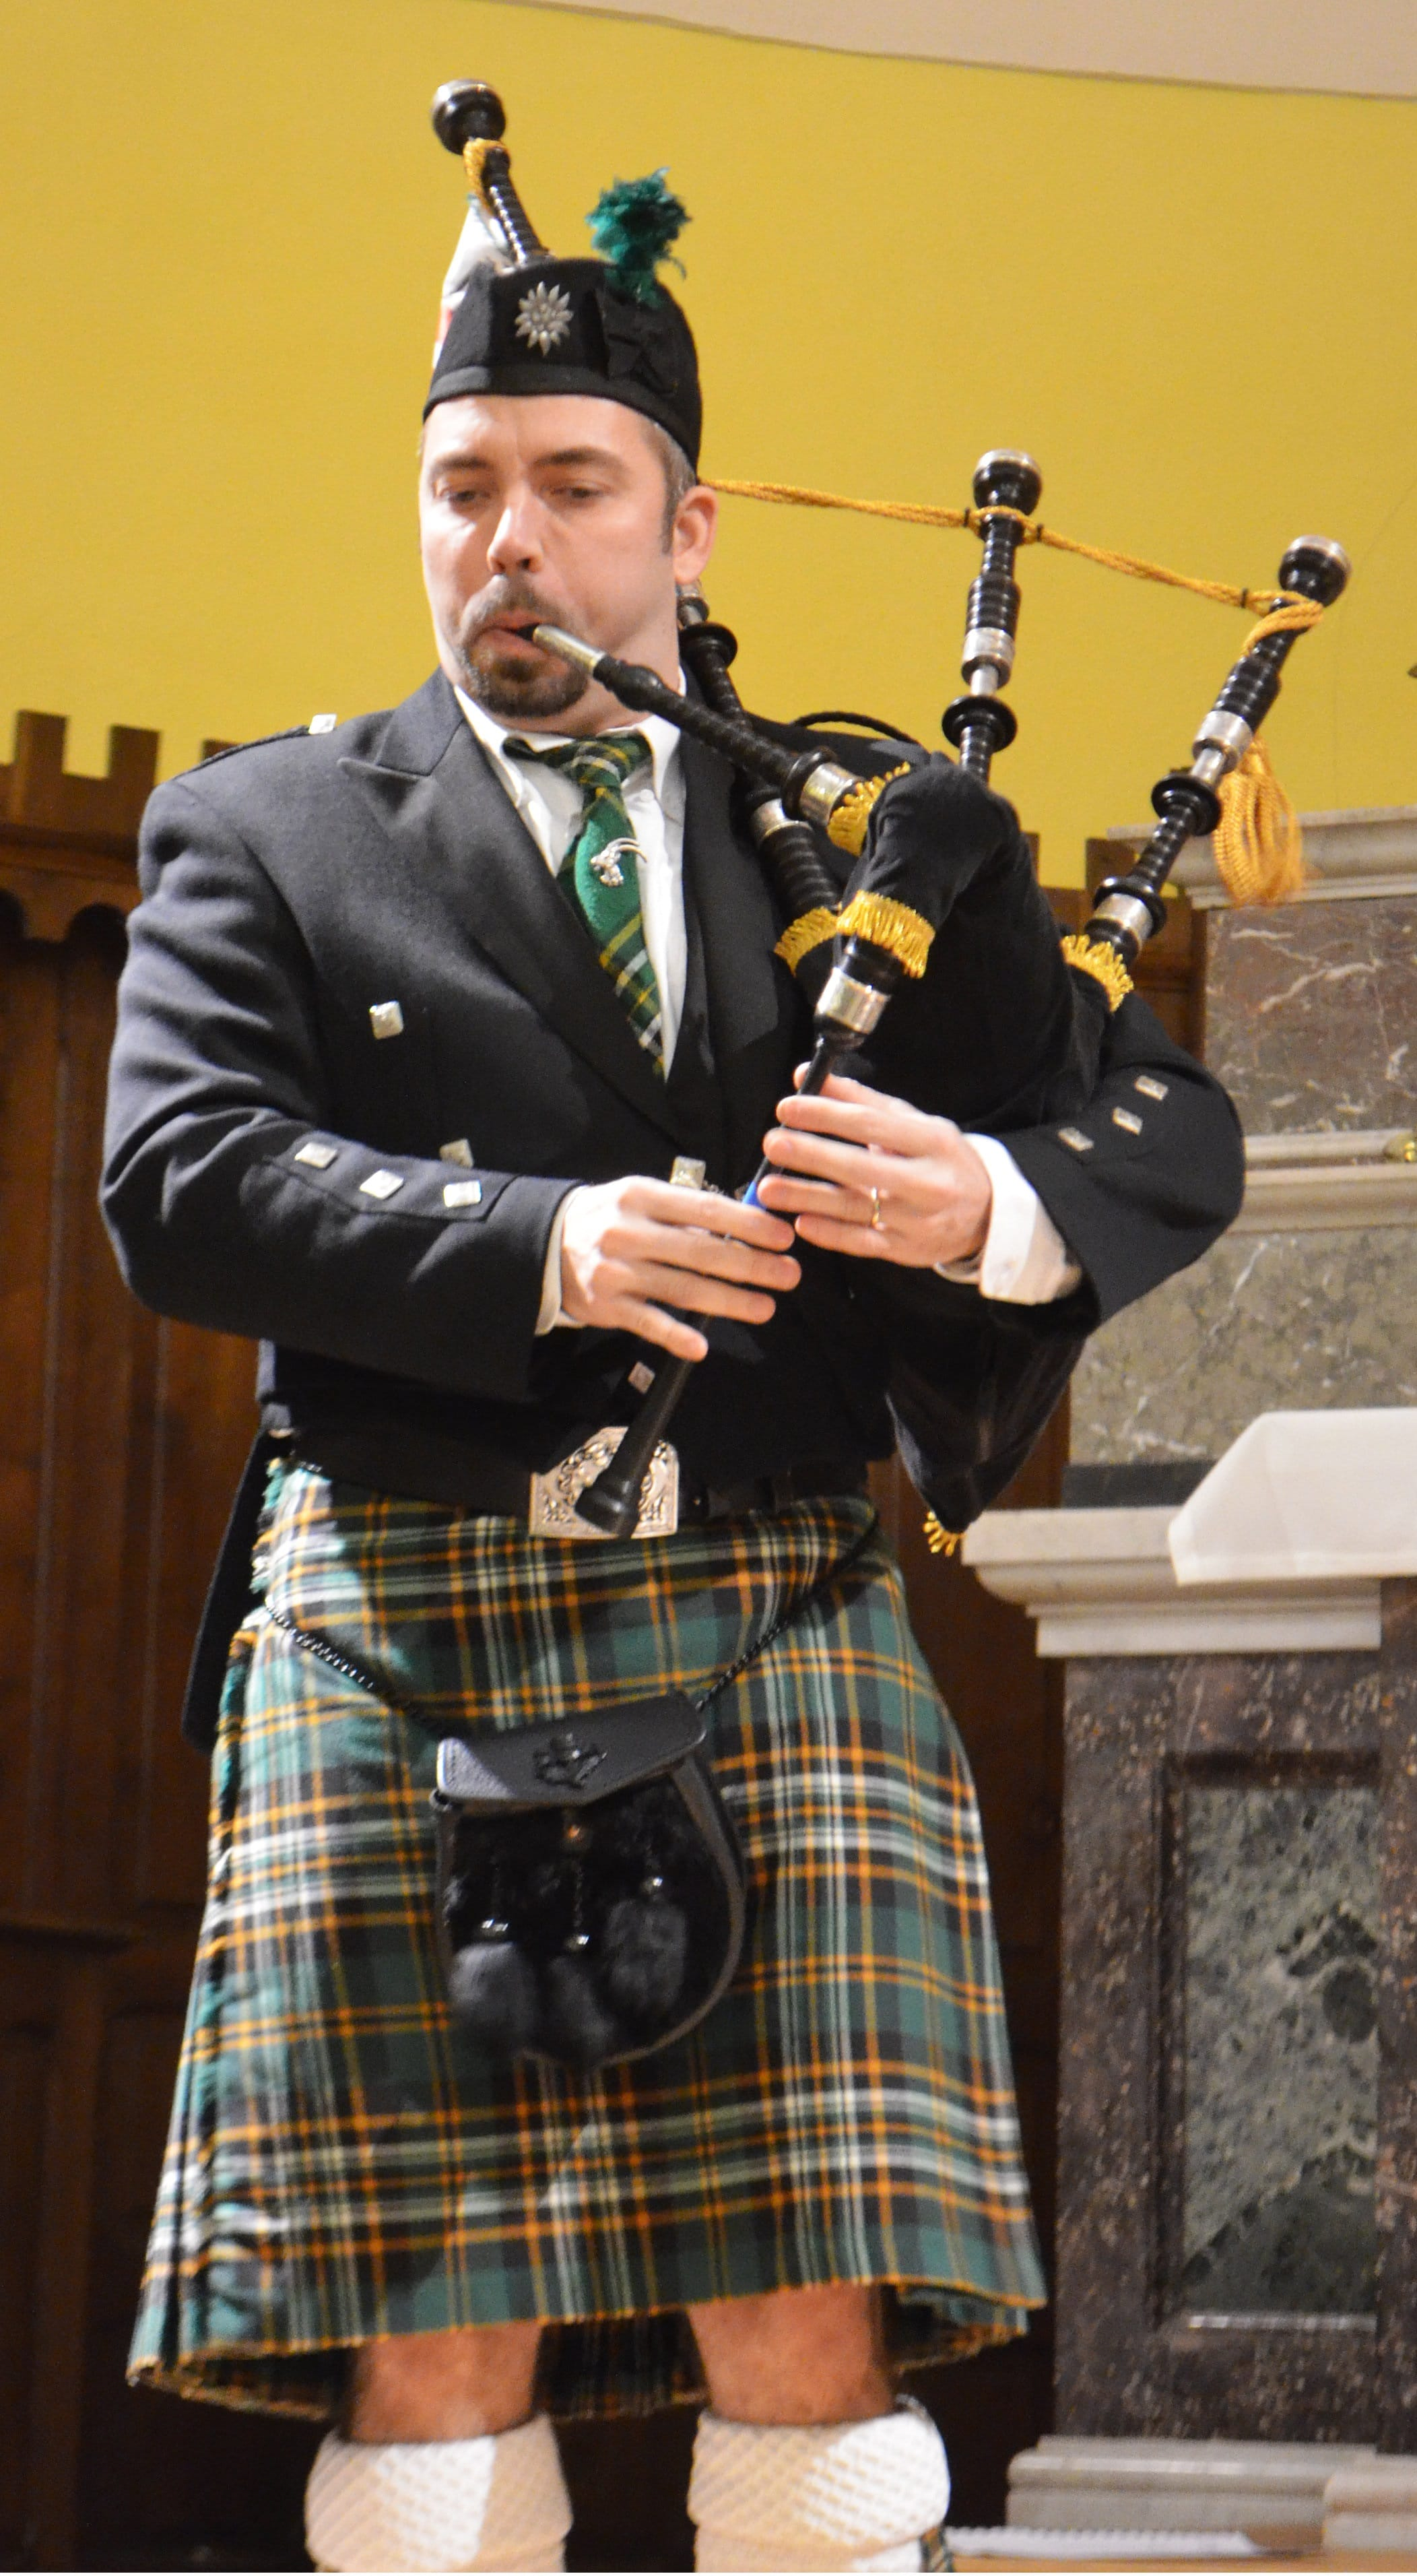 Notre Tenue - Edelweiss Pipers - Pipe Band